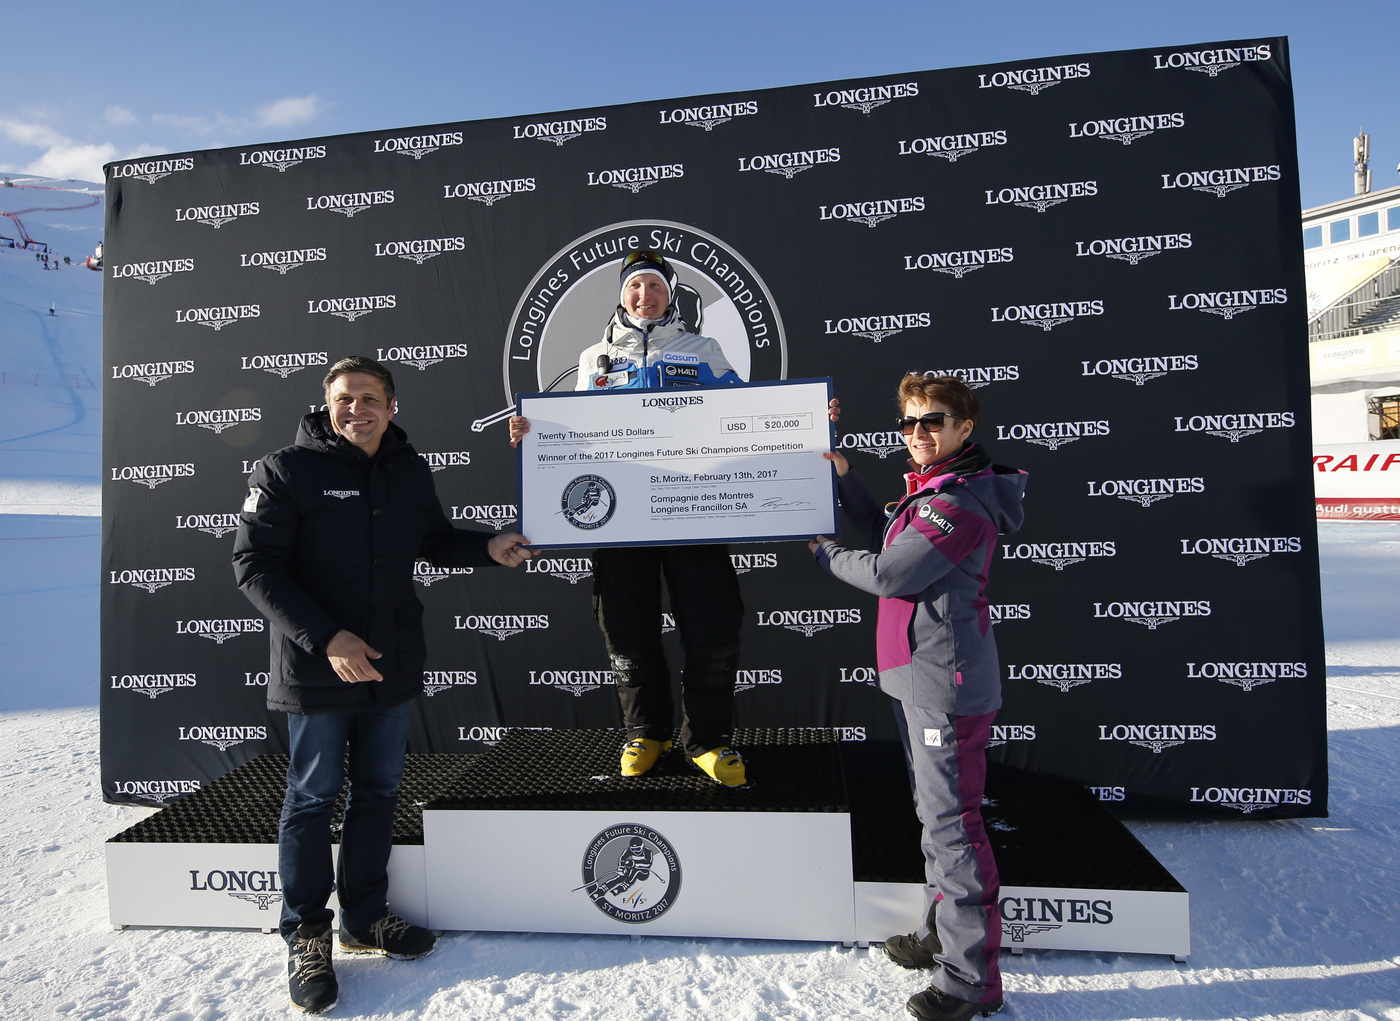 Longines Alpine Skiing Event: LONGINES FUTURE SKI CHAMPIONS - THE BEST YOUNG FEMALE SKIERS 19